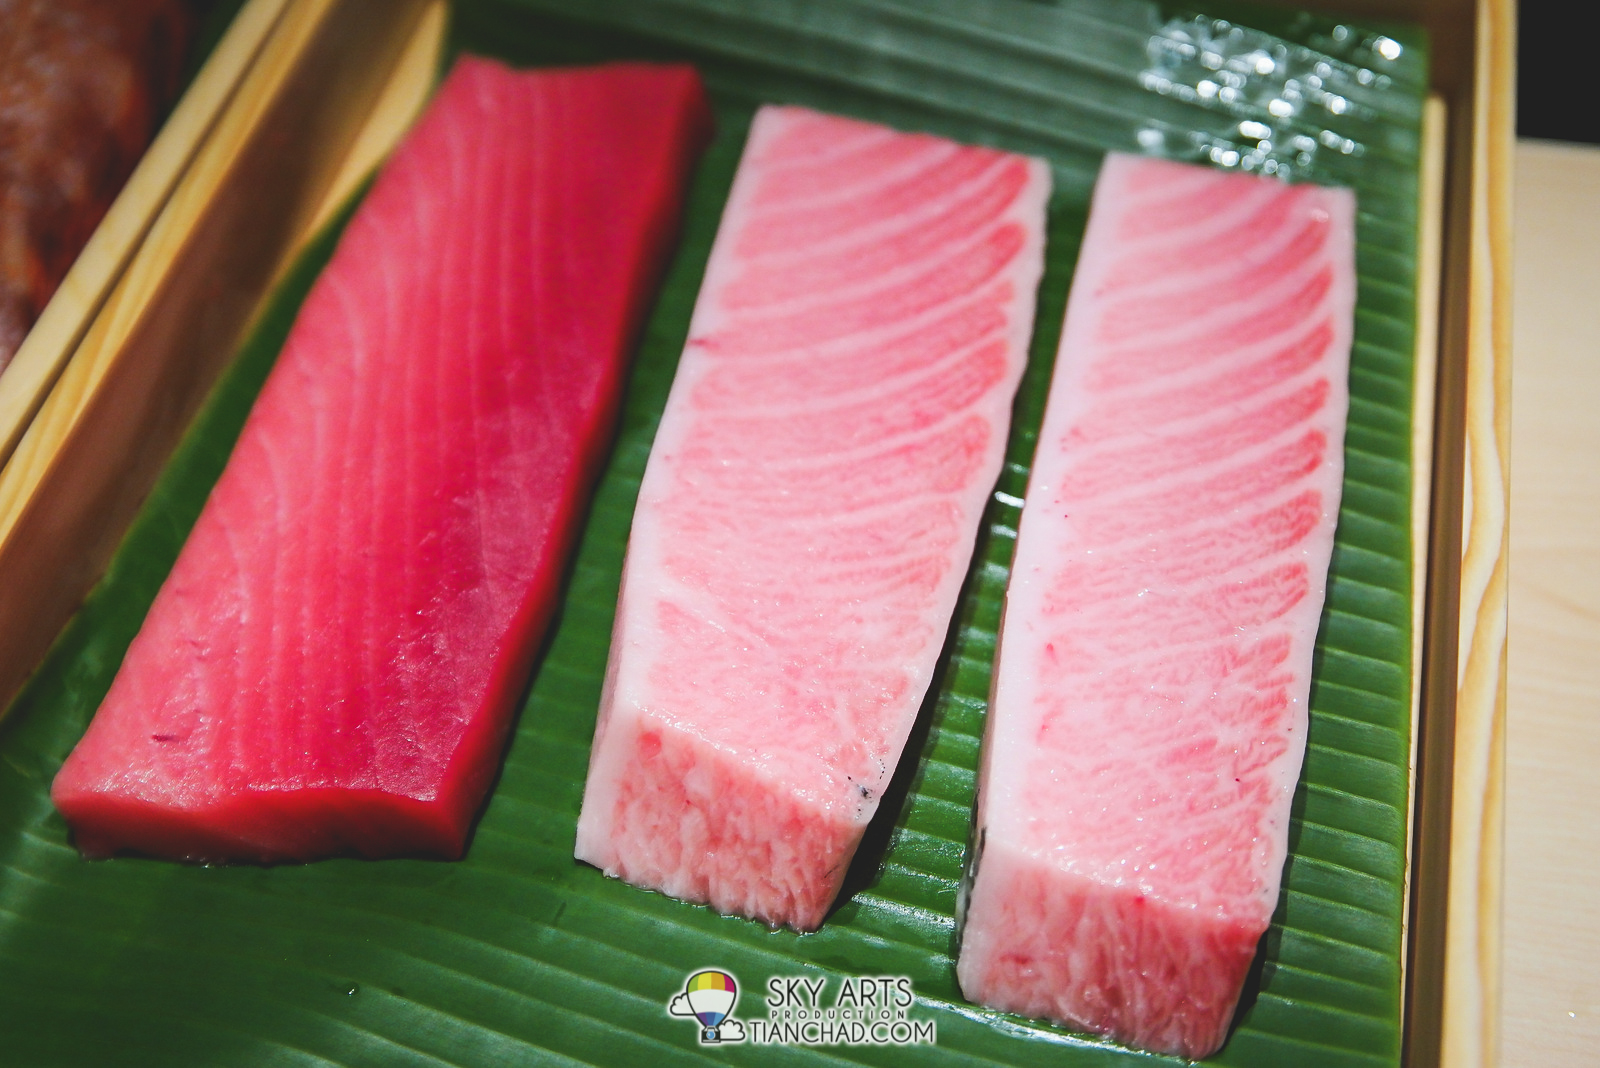 If you are a sashimi lover you'll definitely love this part